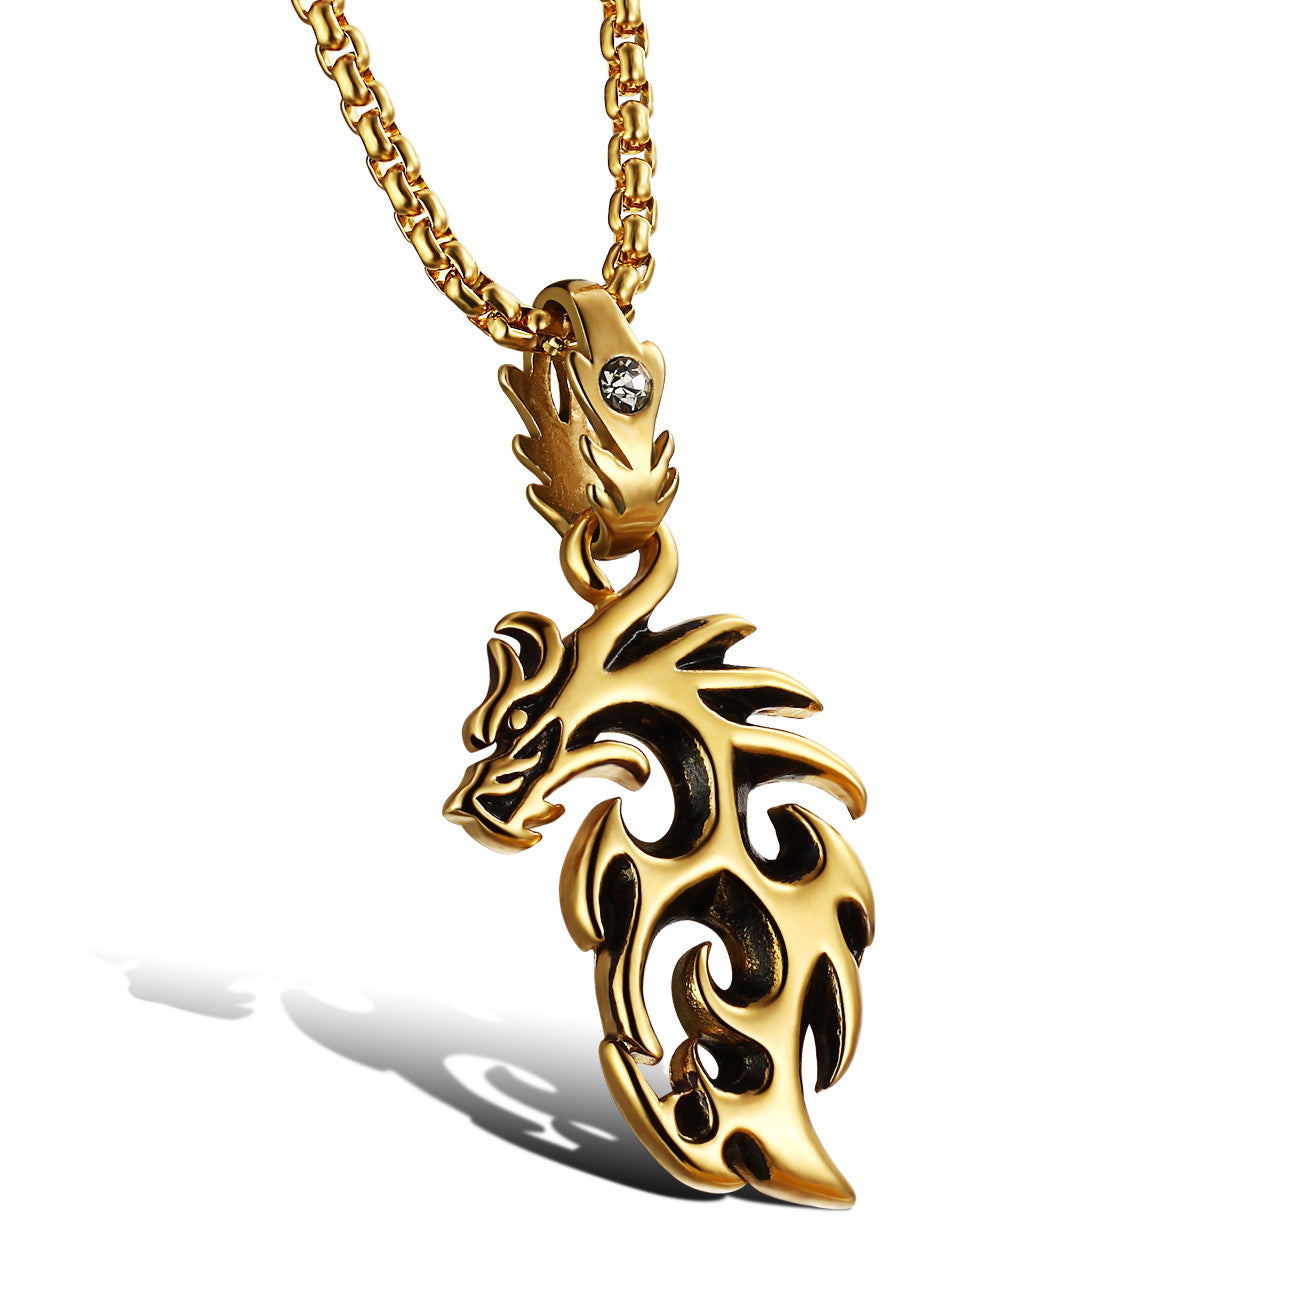 Gold Plated Stainless Steel Vintage Dragon - Florence Scovel - 1